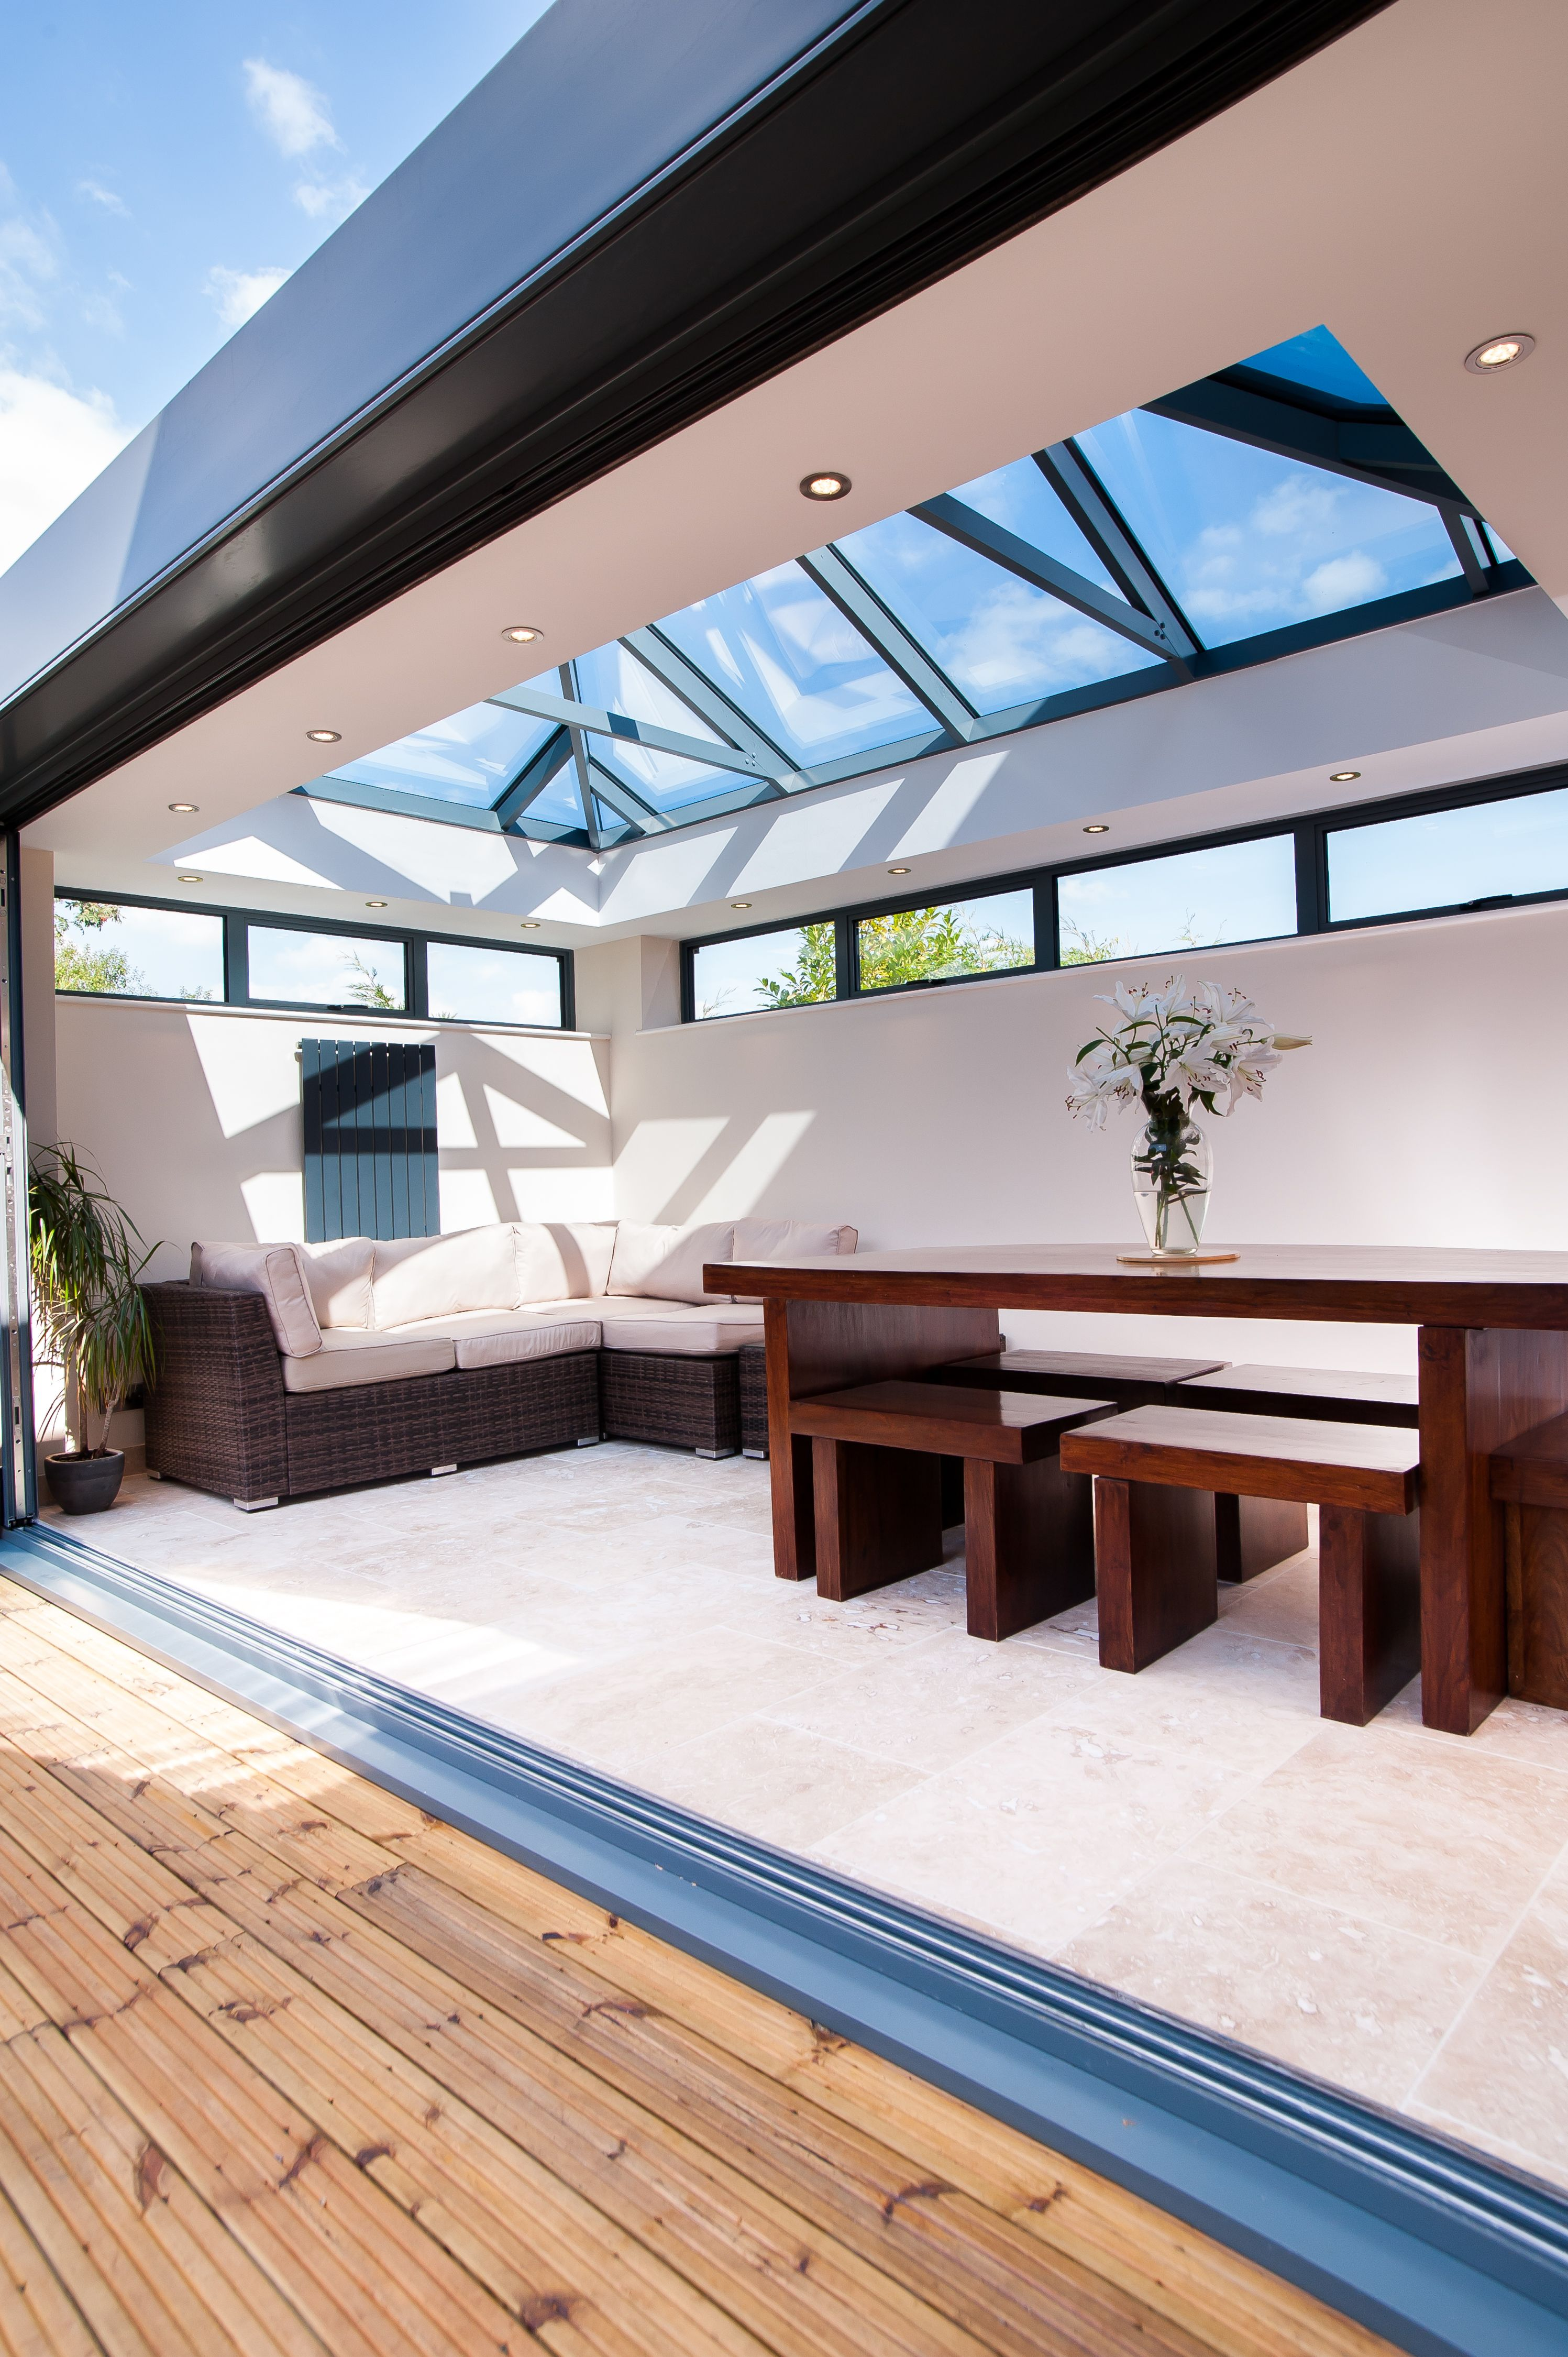 Add A Stylish Energy Efficient Roof Lantern Skylight To